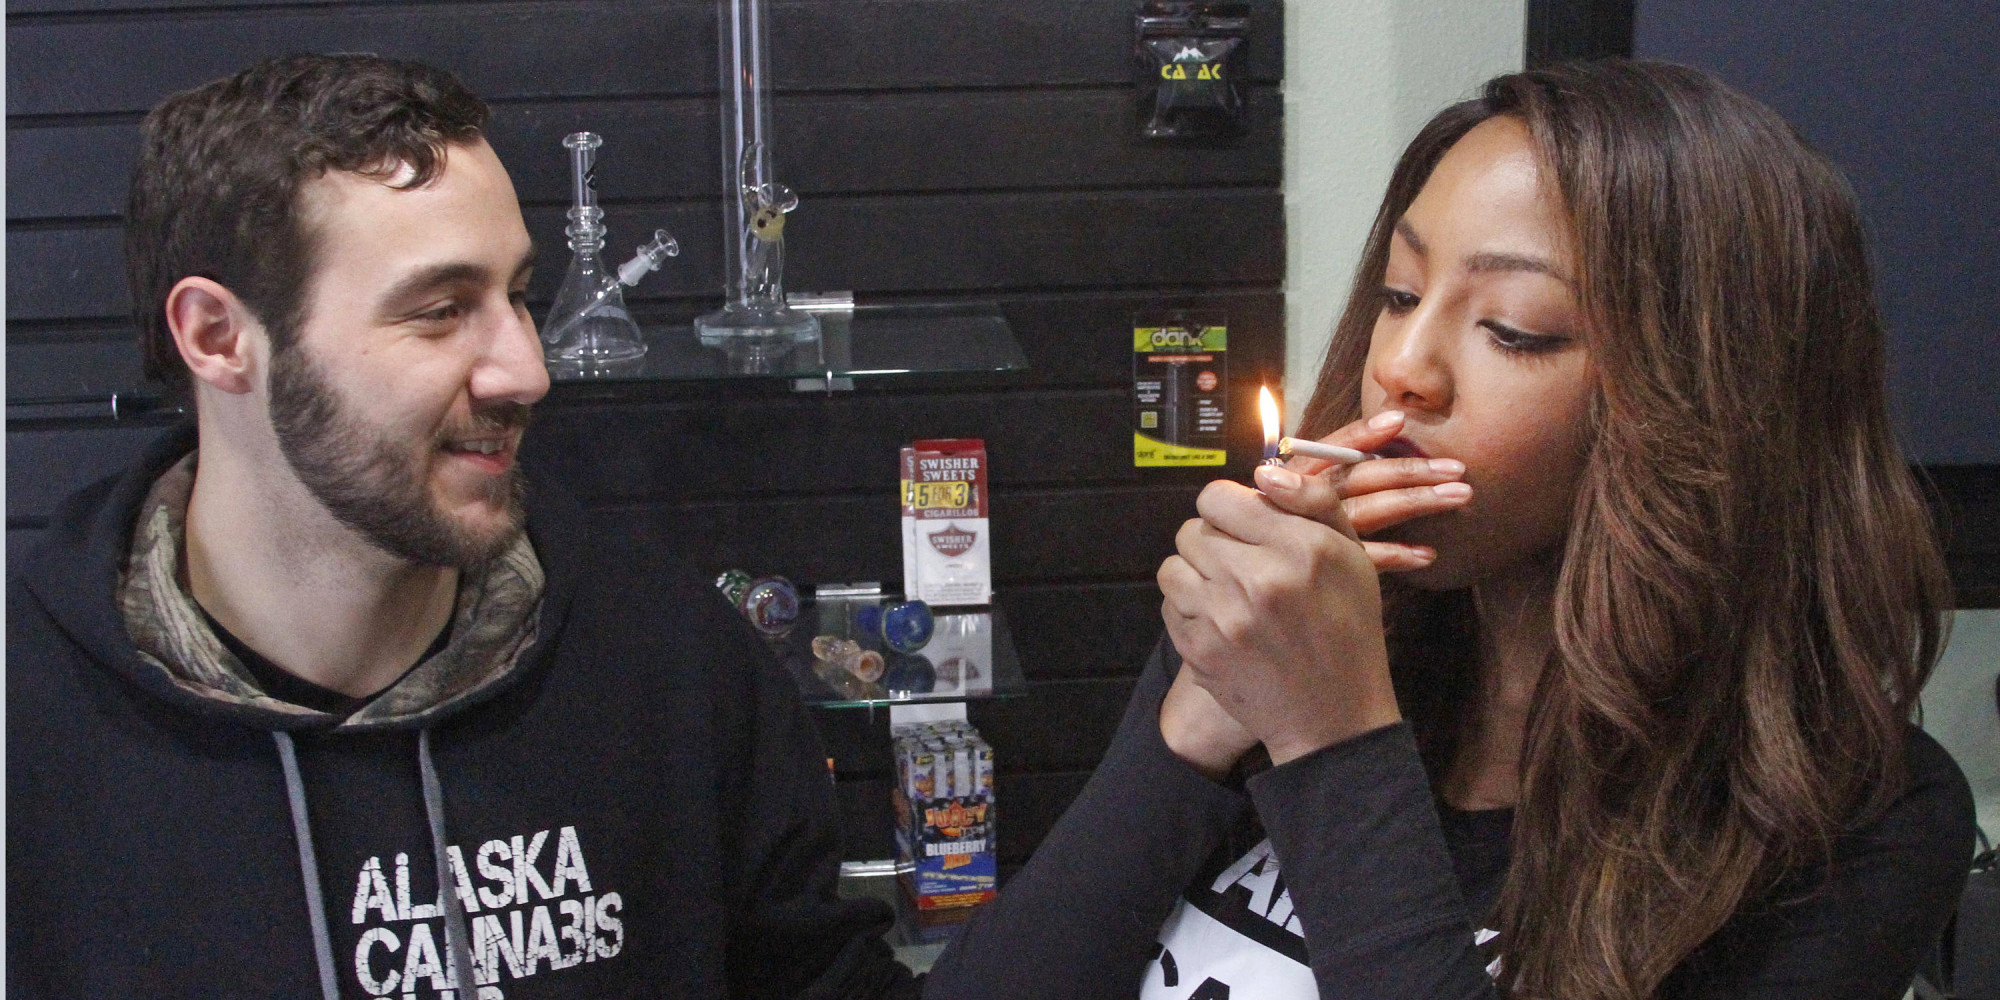 The club of pot activist who quit tv job on air the huffington post